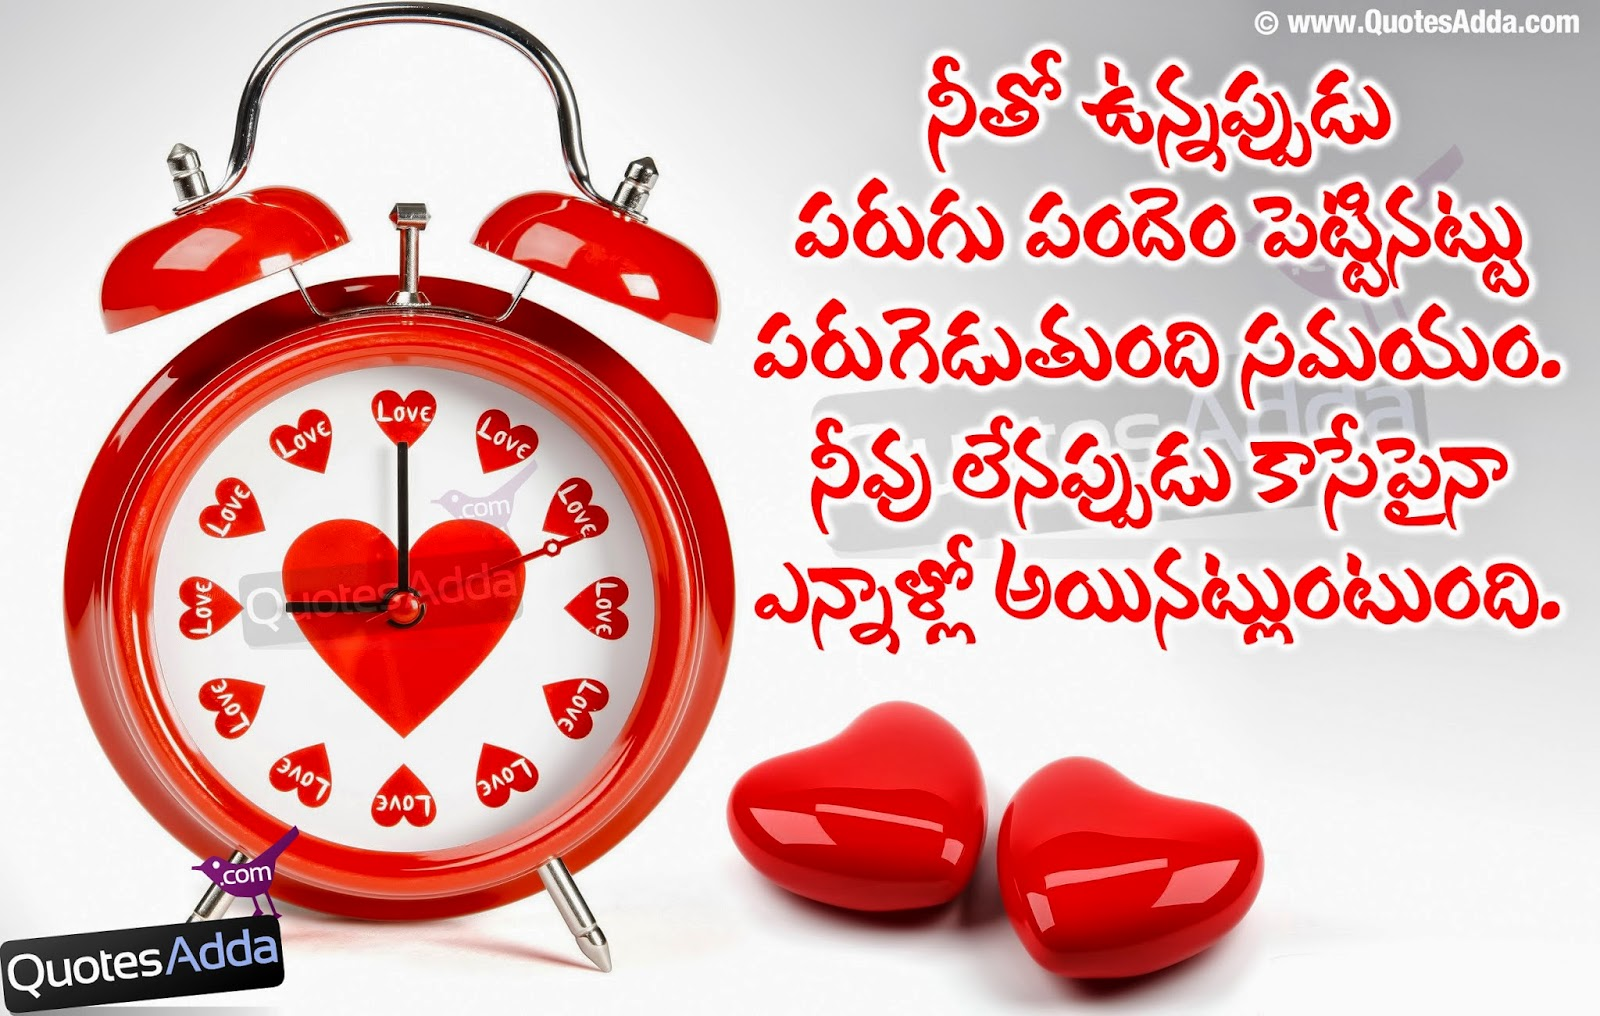 Telugu Love Quote Photos Nice Telugu Love Quotations